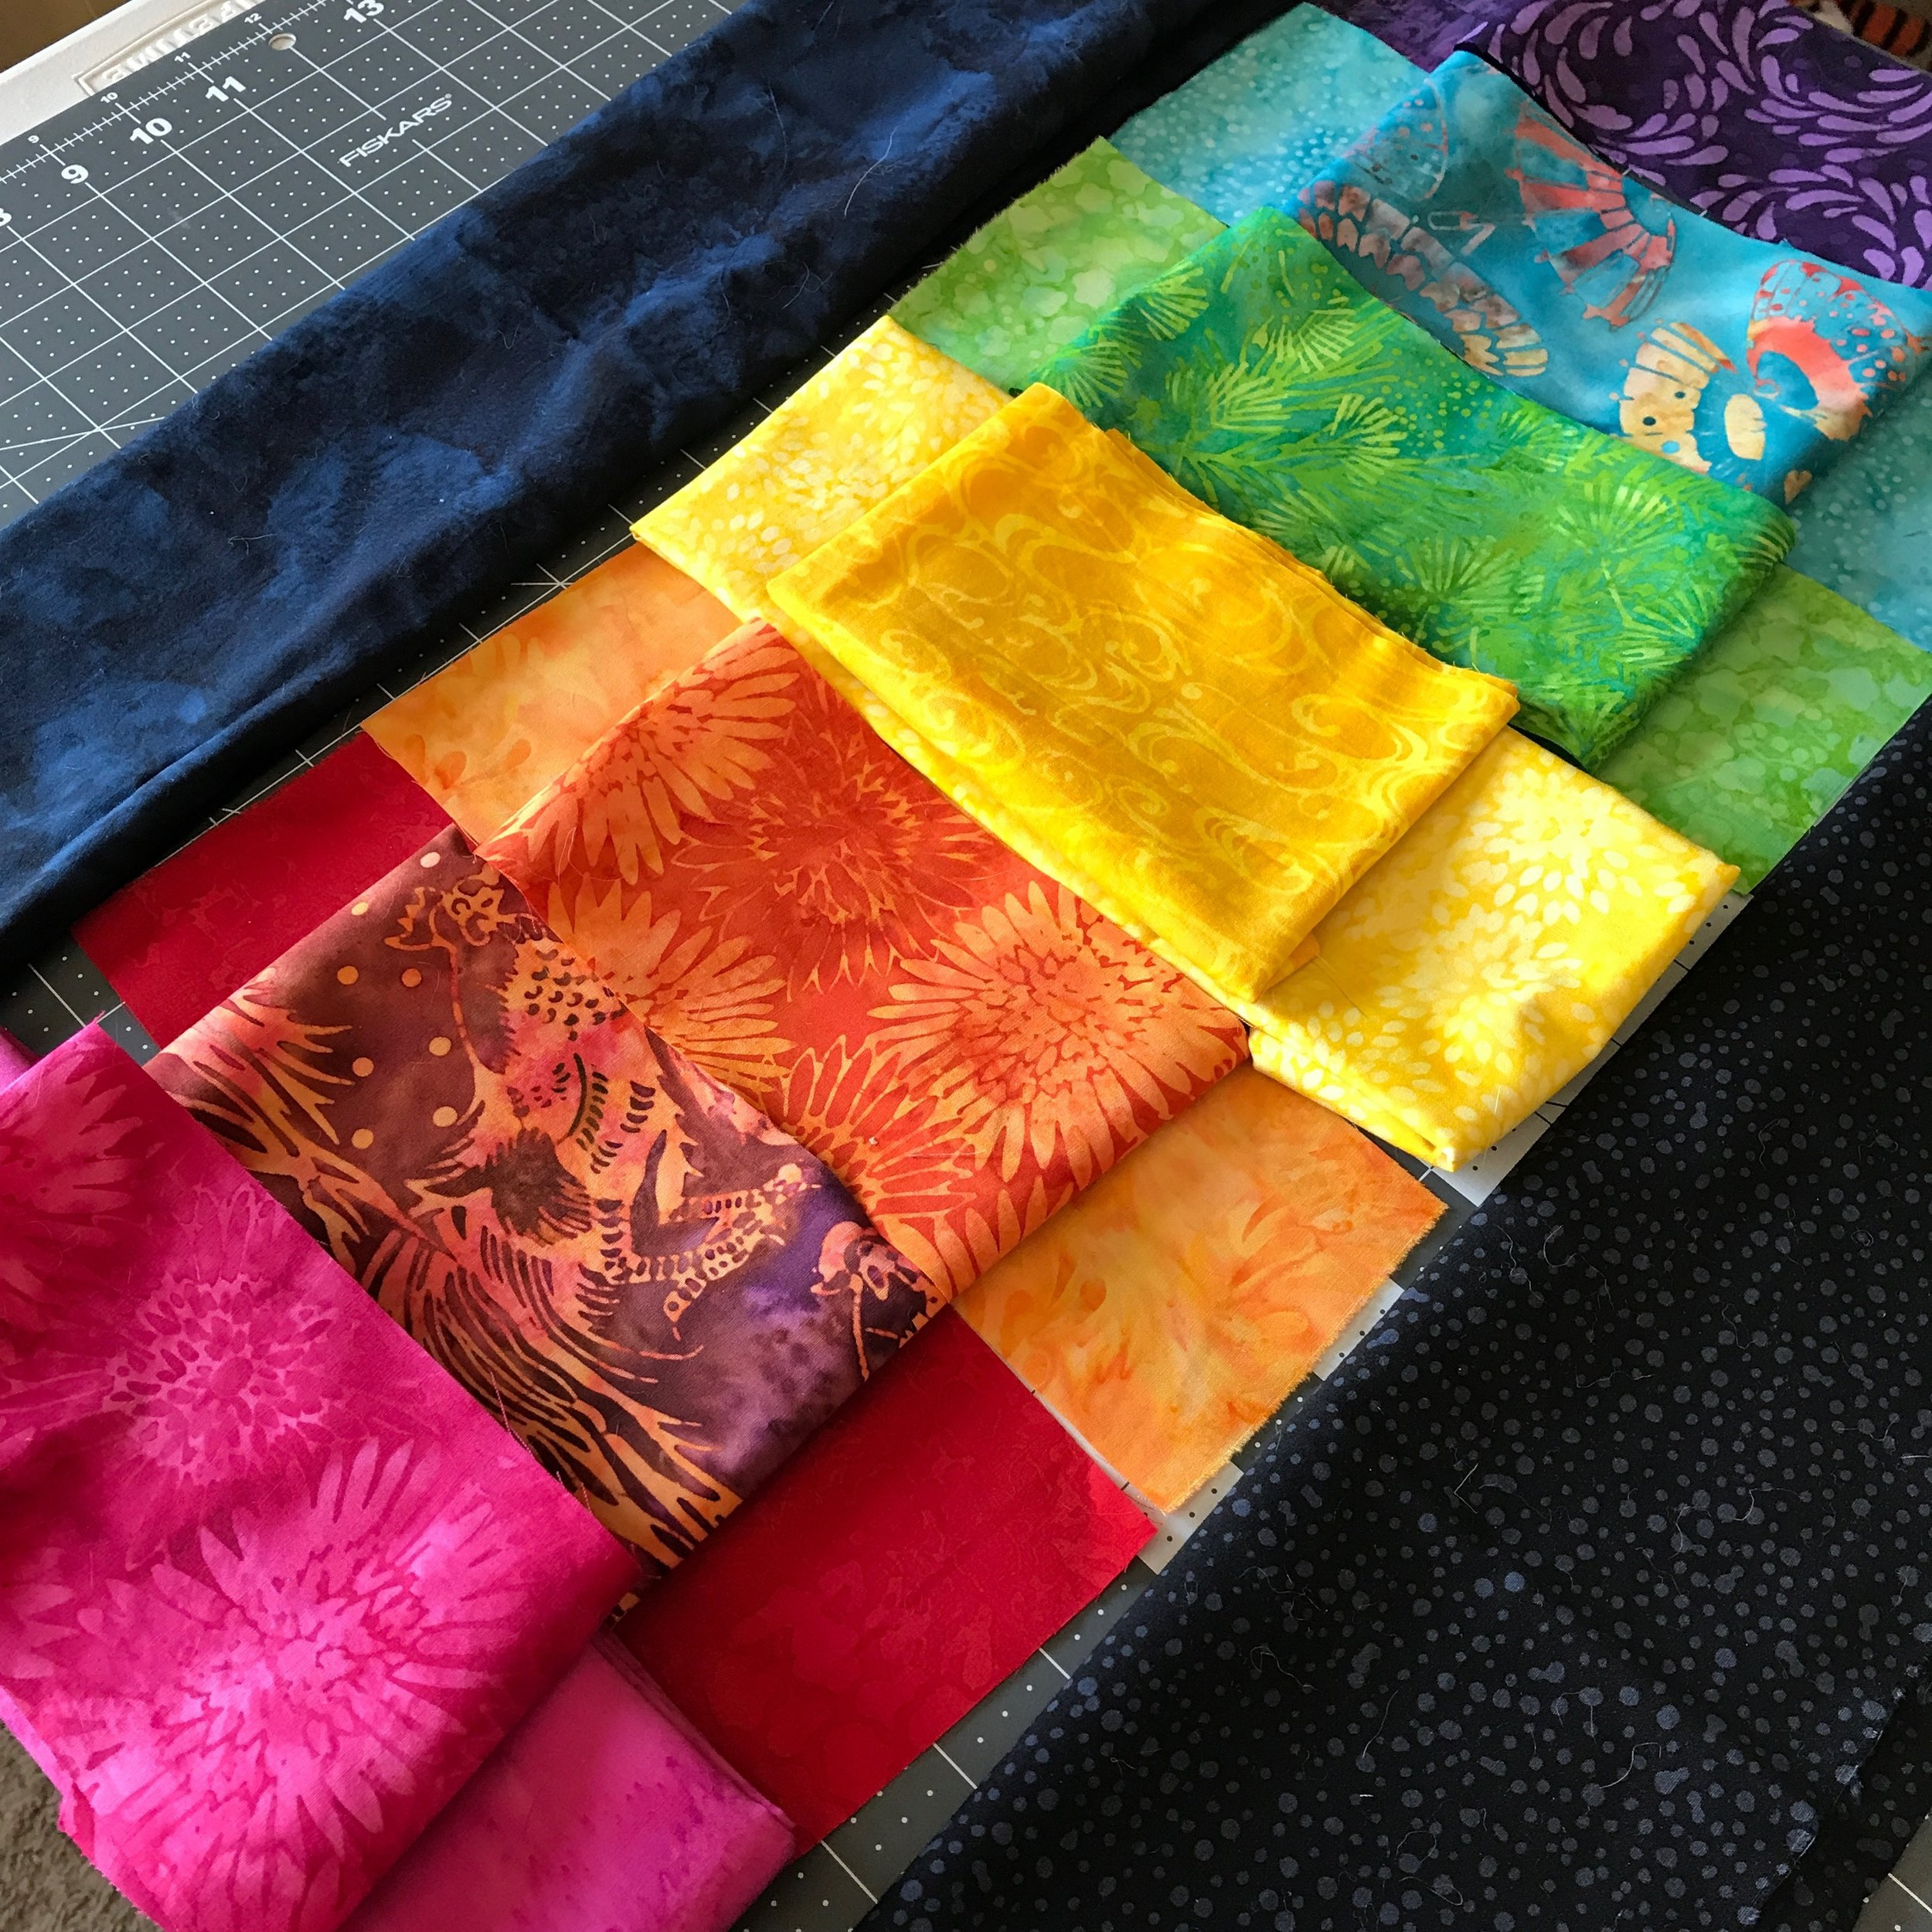 Trying out fabrics before cutting.